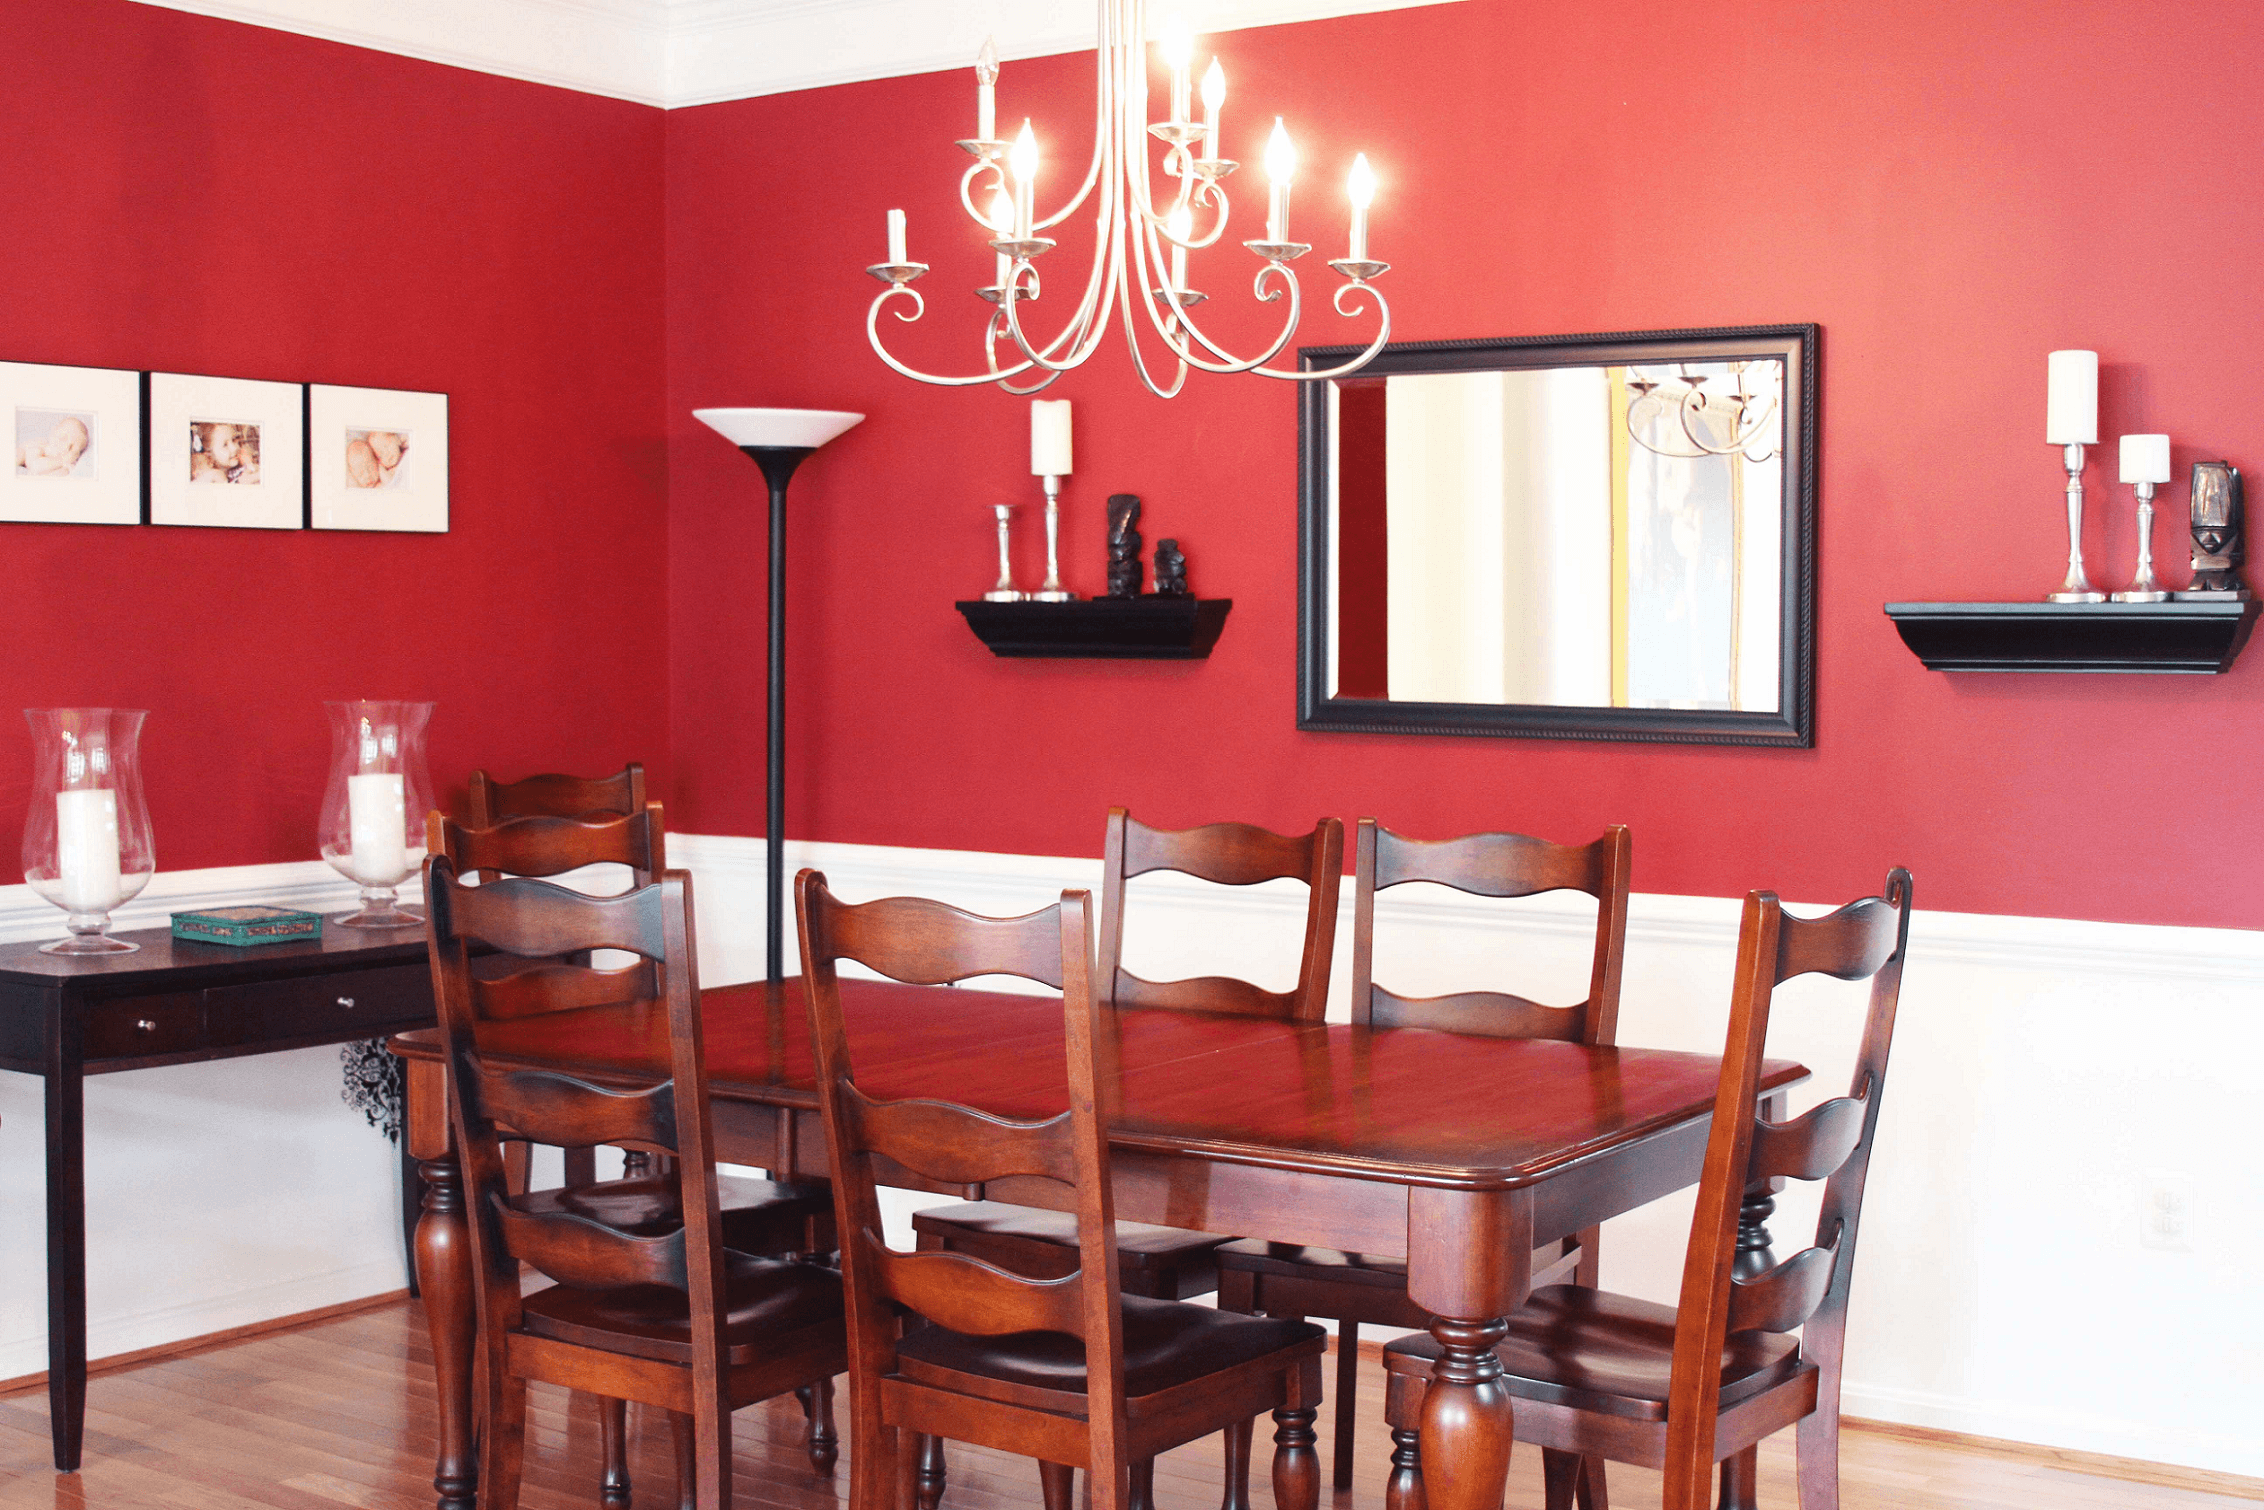 Red Painting Traditional dining room wall decor